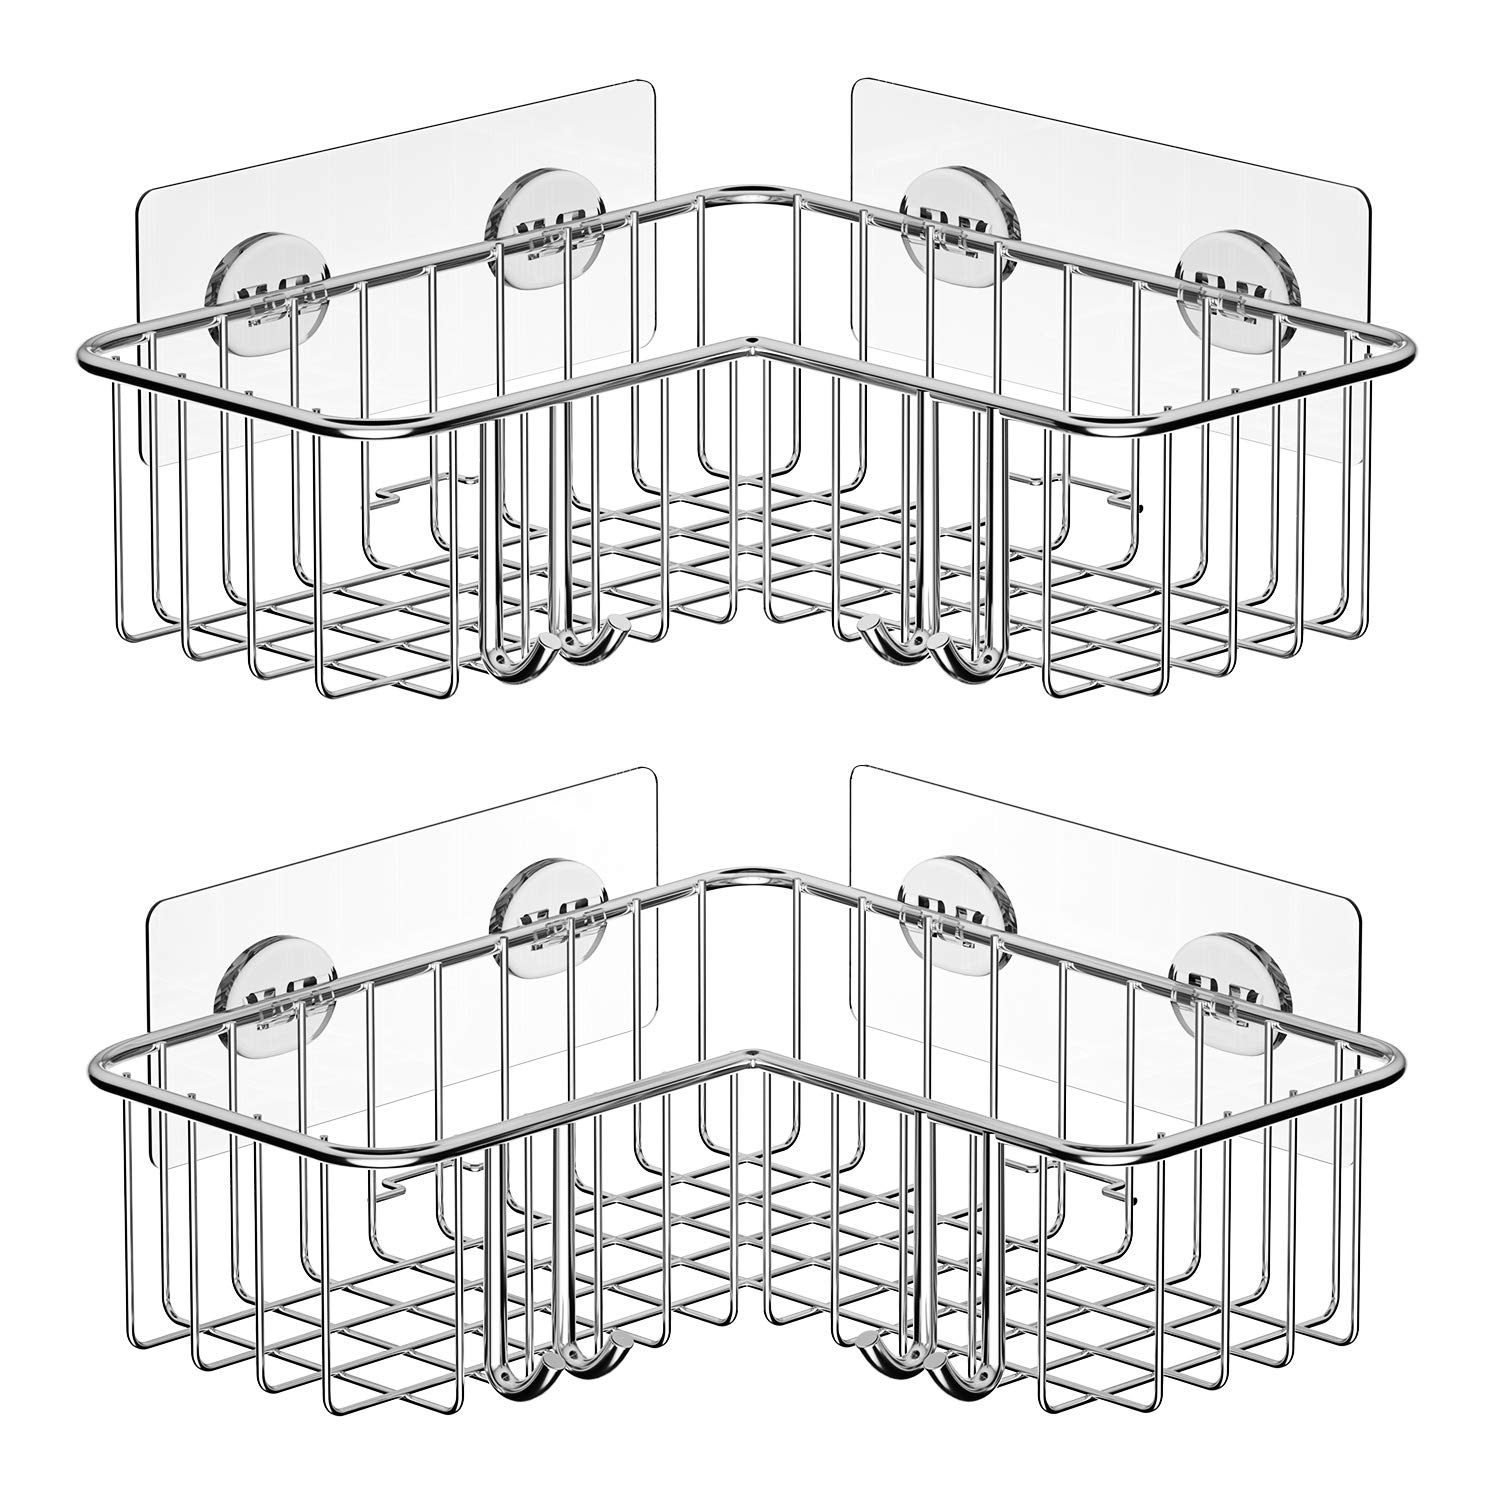 SMARTAKE 2-Pack Corner Shower Caddy, Adhesive Bath Shelf with Hooks, SUS304 Stainless Steel Storage Organizer for Bathroom, Toilet, Kitchen and Dorm by SMARTAKE